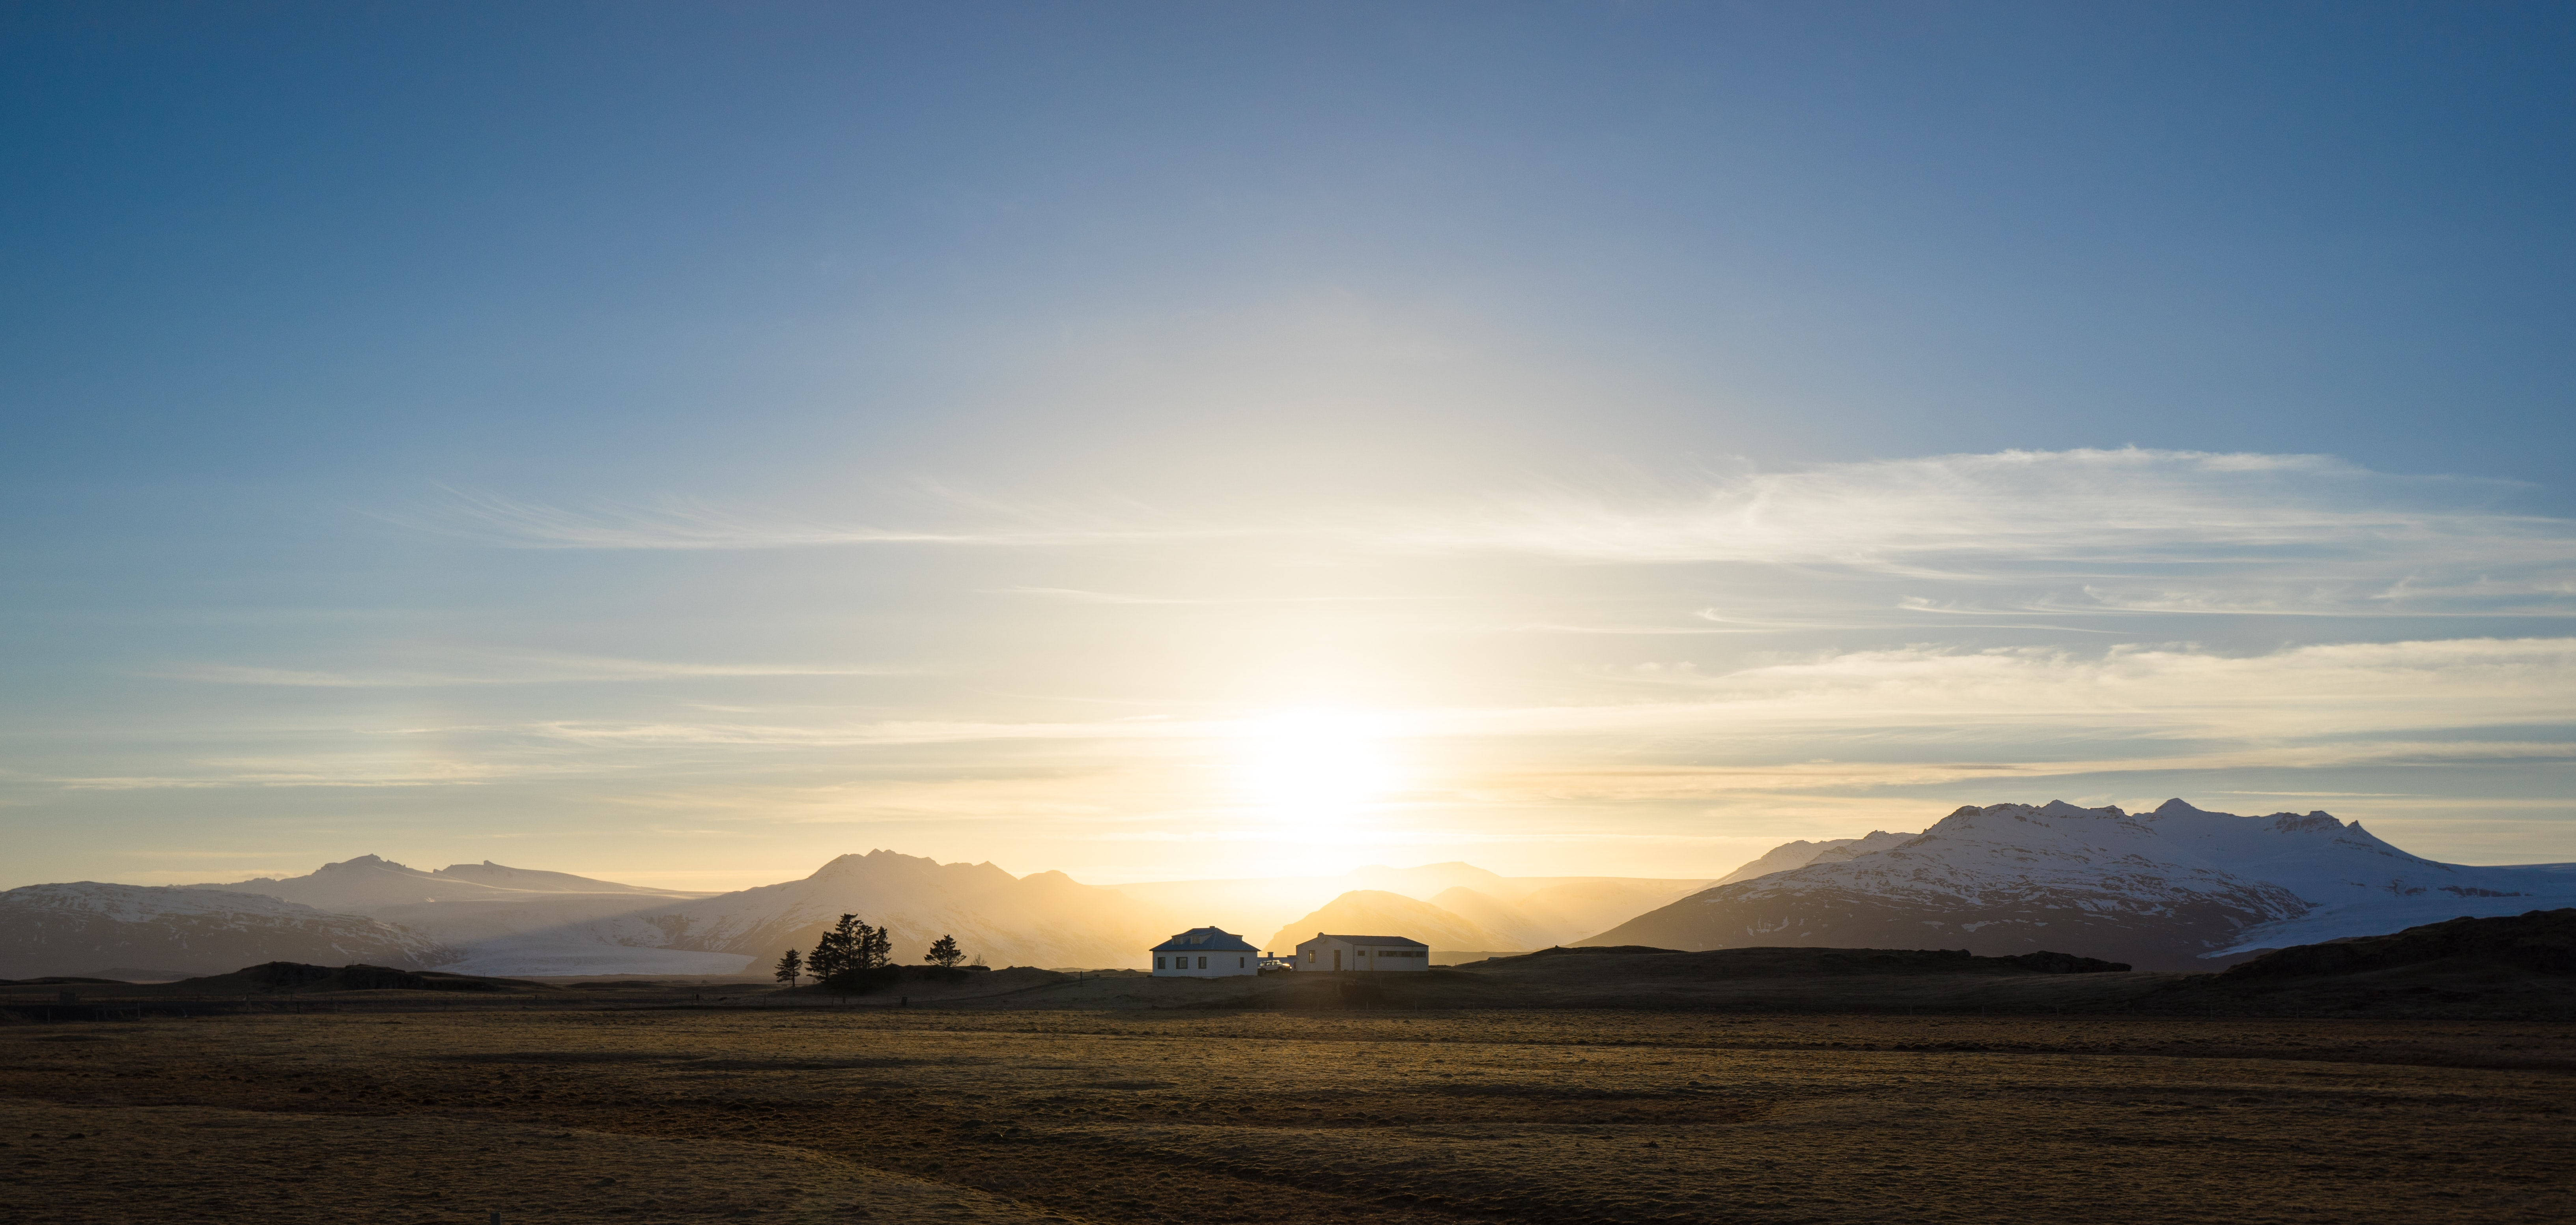 A sunset silhouette of a mountain house in a meadow, in front of the mountains in Iceland